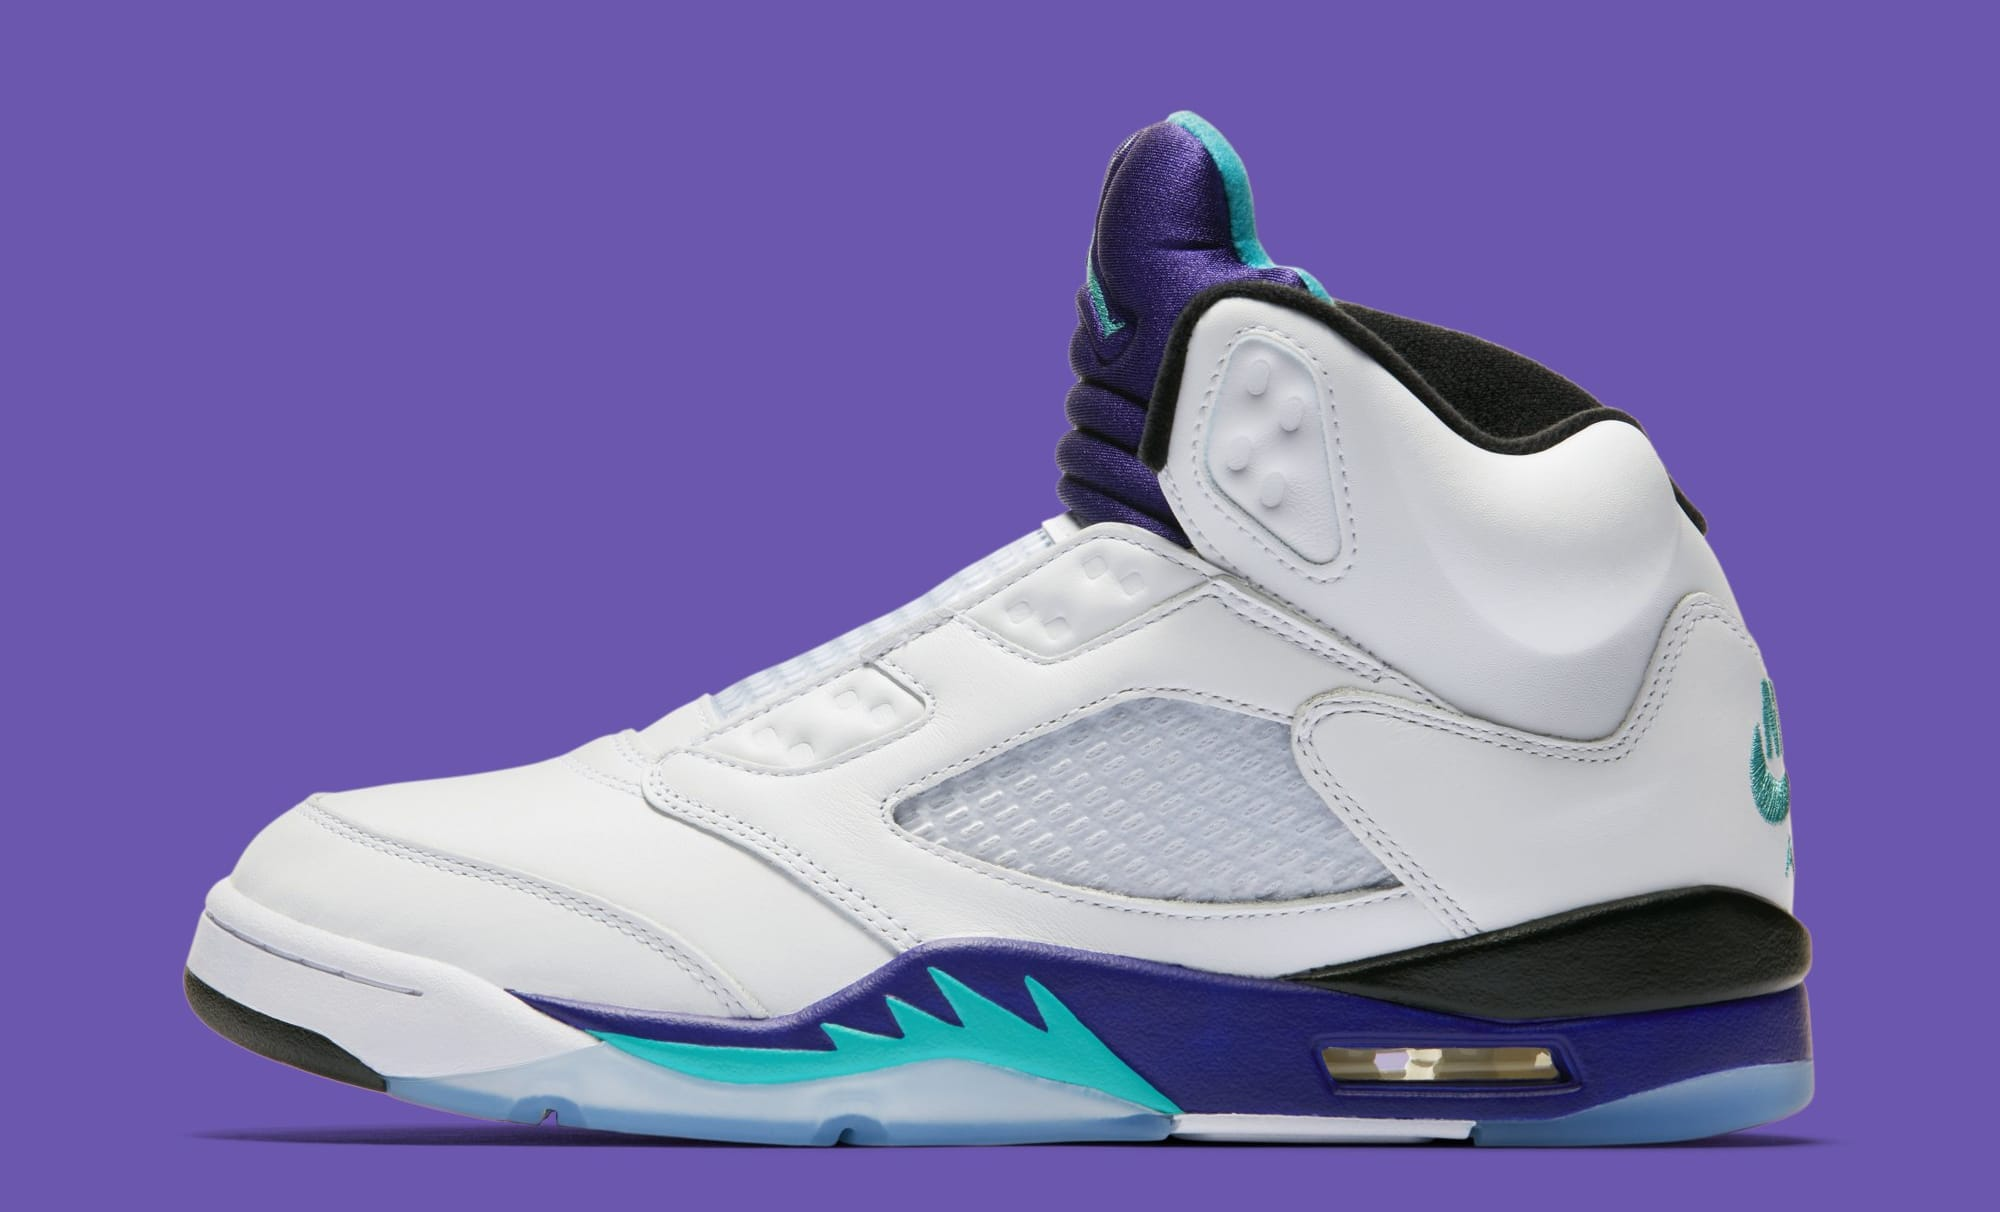 new arrival 041c7 06be5 Air Jordan 5 Retro NRG 'Fresh Prince' AV3919-135 Release ...